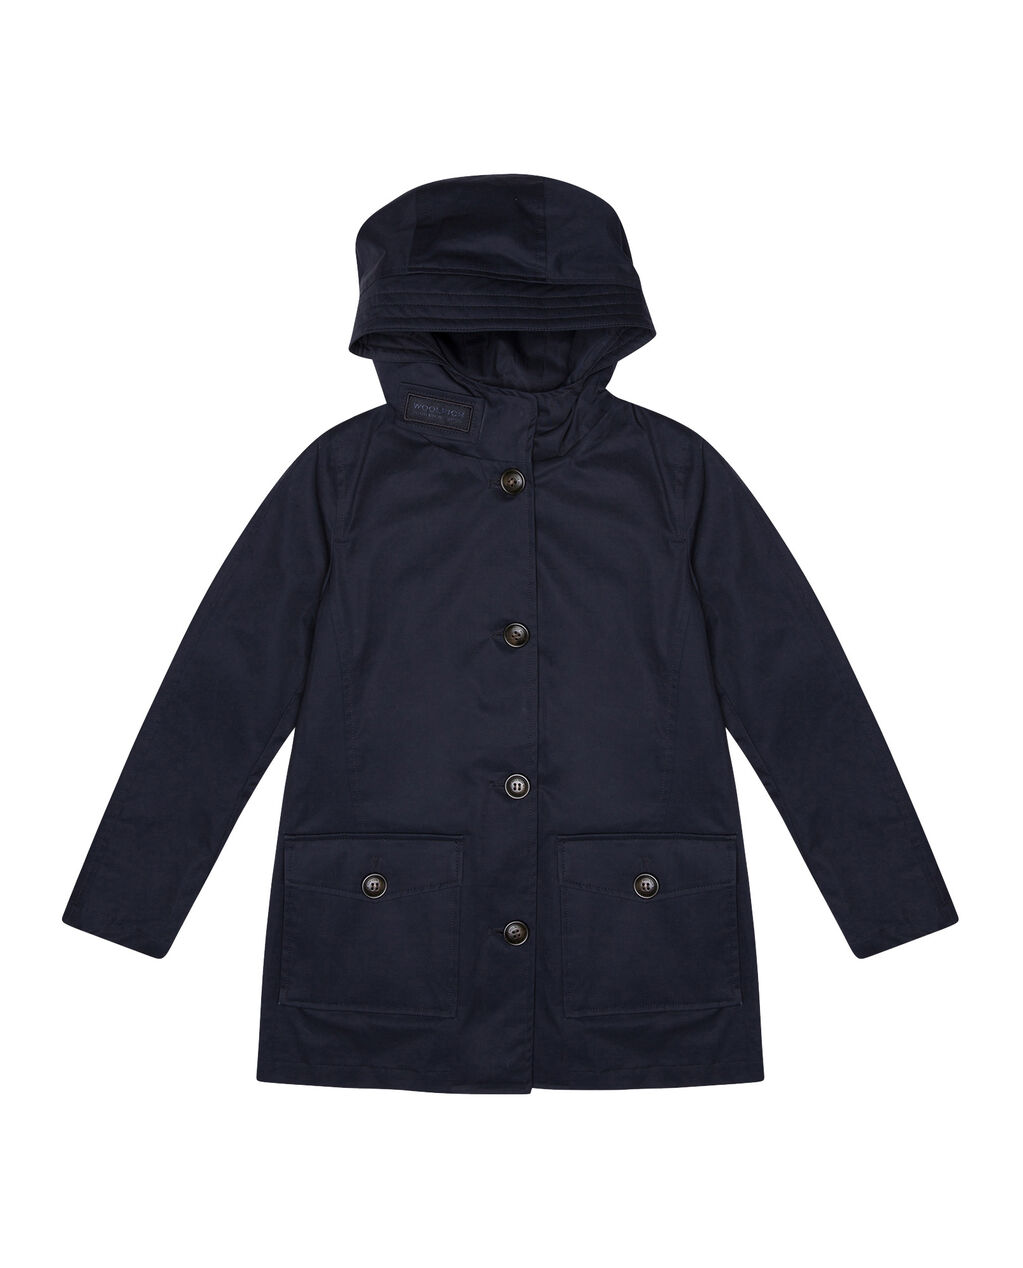 G'S Summer Parka Hc, DARK NAVY, hi-res